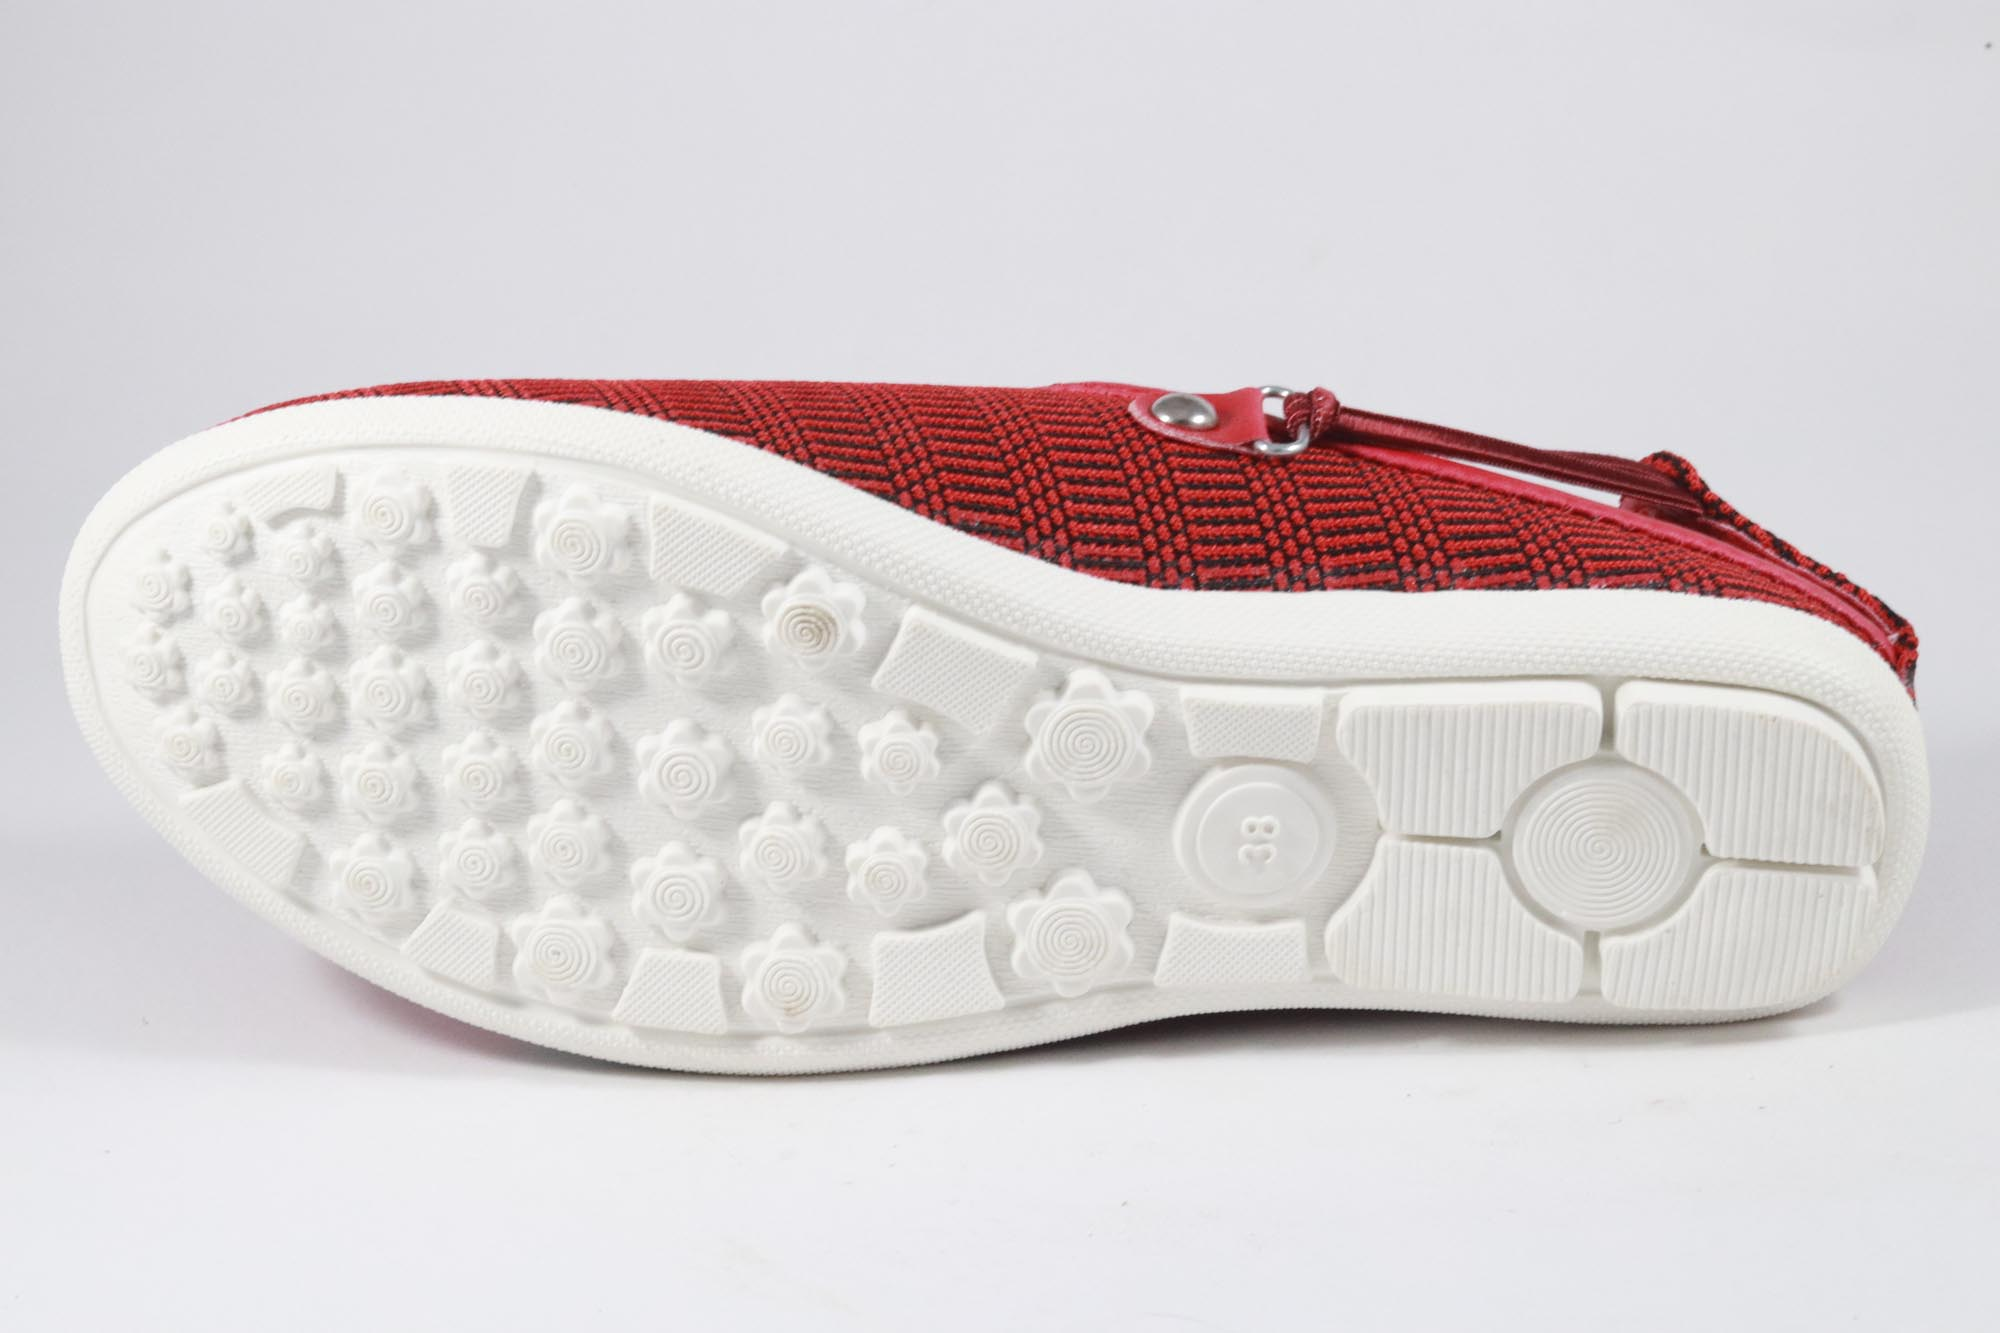 AMRIT FOOTCARE STYLISH Shoes, Belliles AMRIT-150 (RED, 8-11, 6 PAIR)